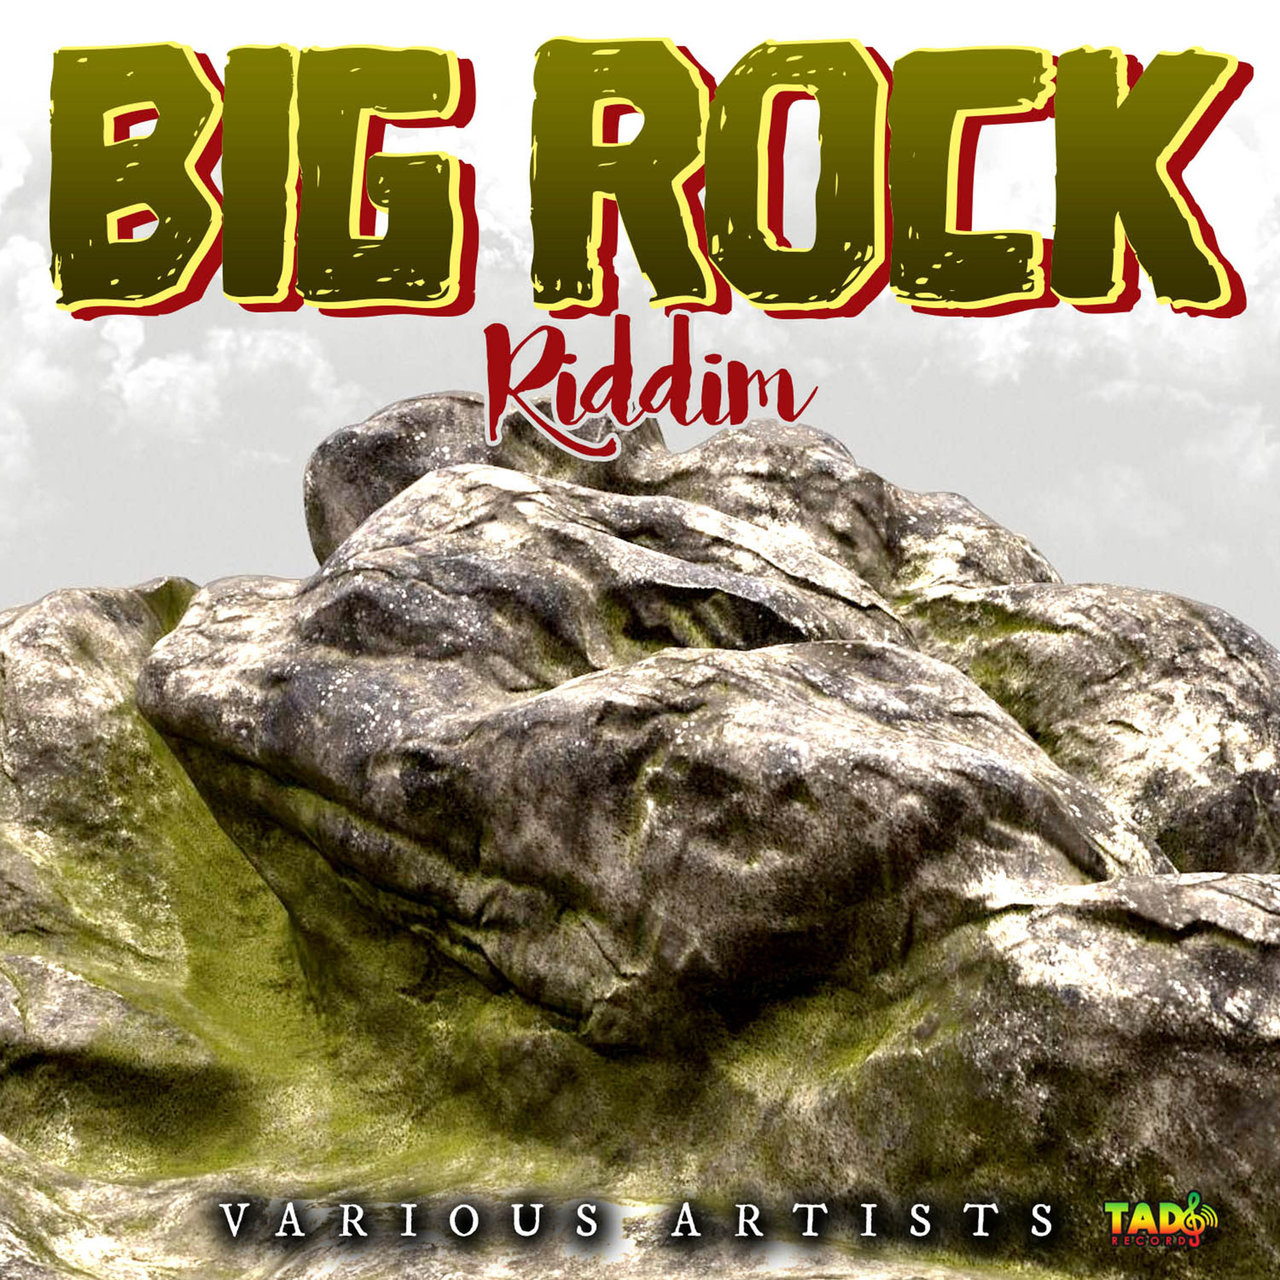 Big Rock Riddim